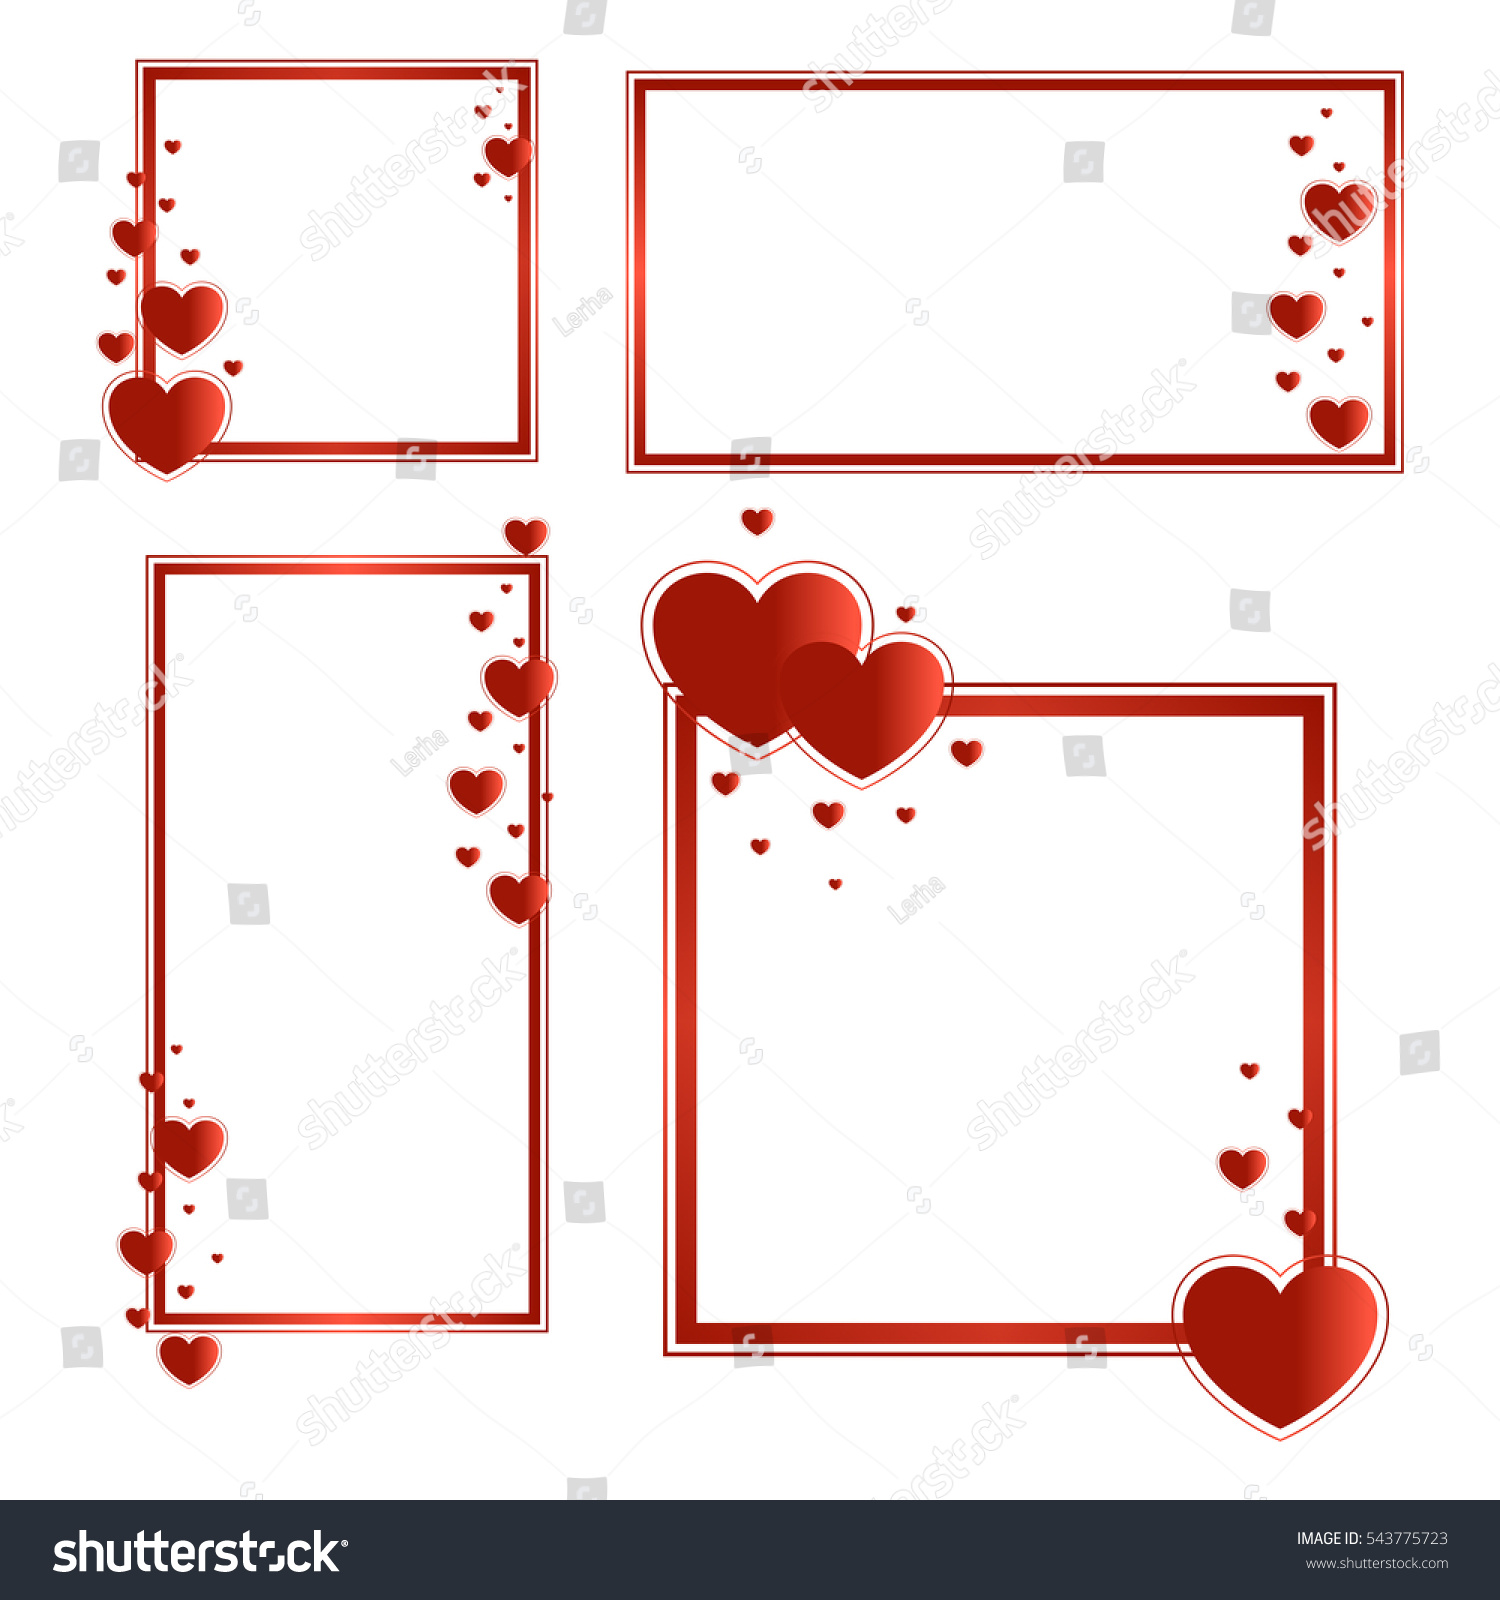 Frames Text Photo Red Hearts Horizontal Stock Vector Royalty Free